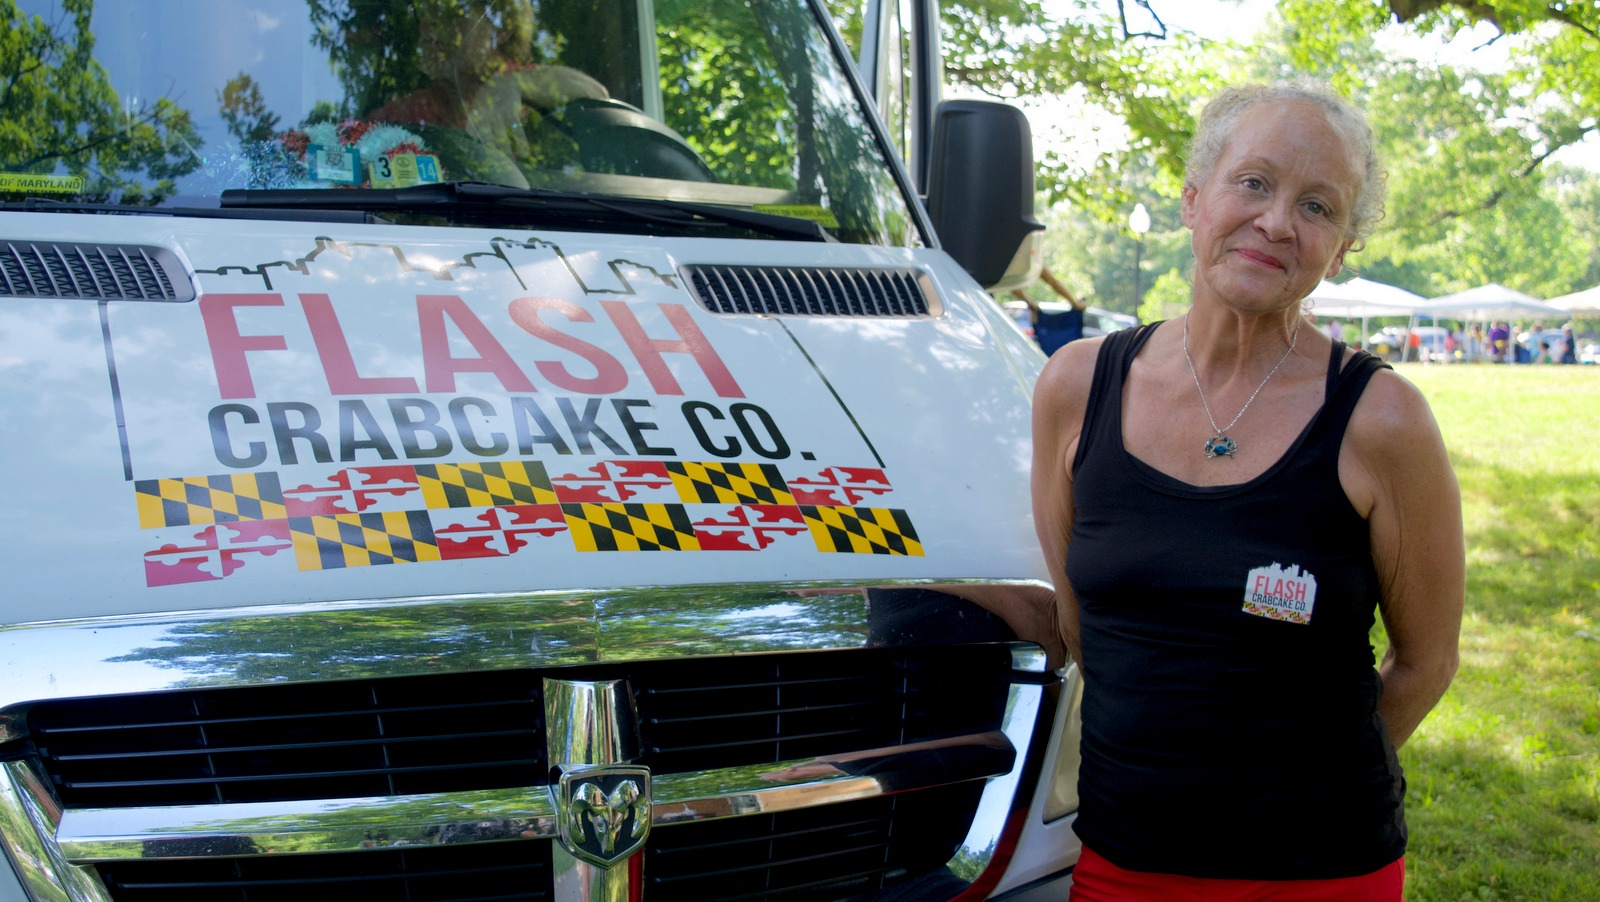 Jo Harding-Gordon, of Flash Crabcakes, at the Druid Hill farmers Market. (Lizzie Kane)